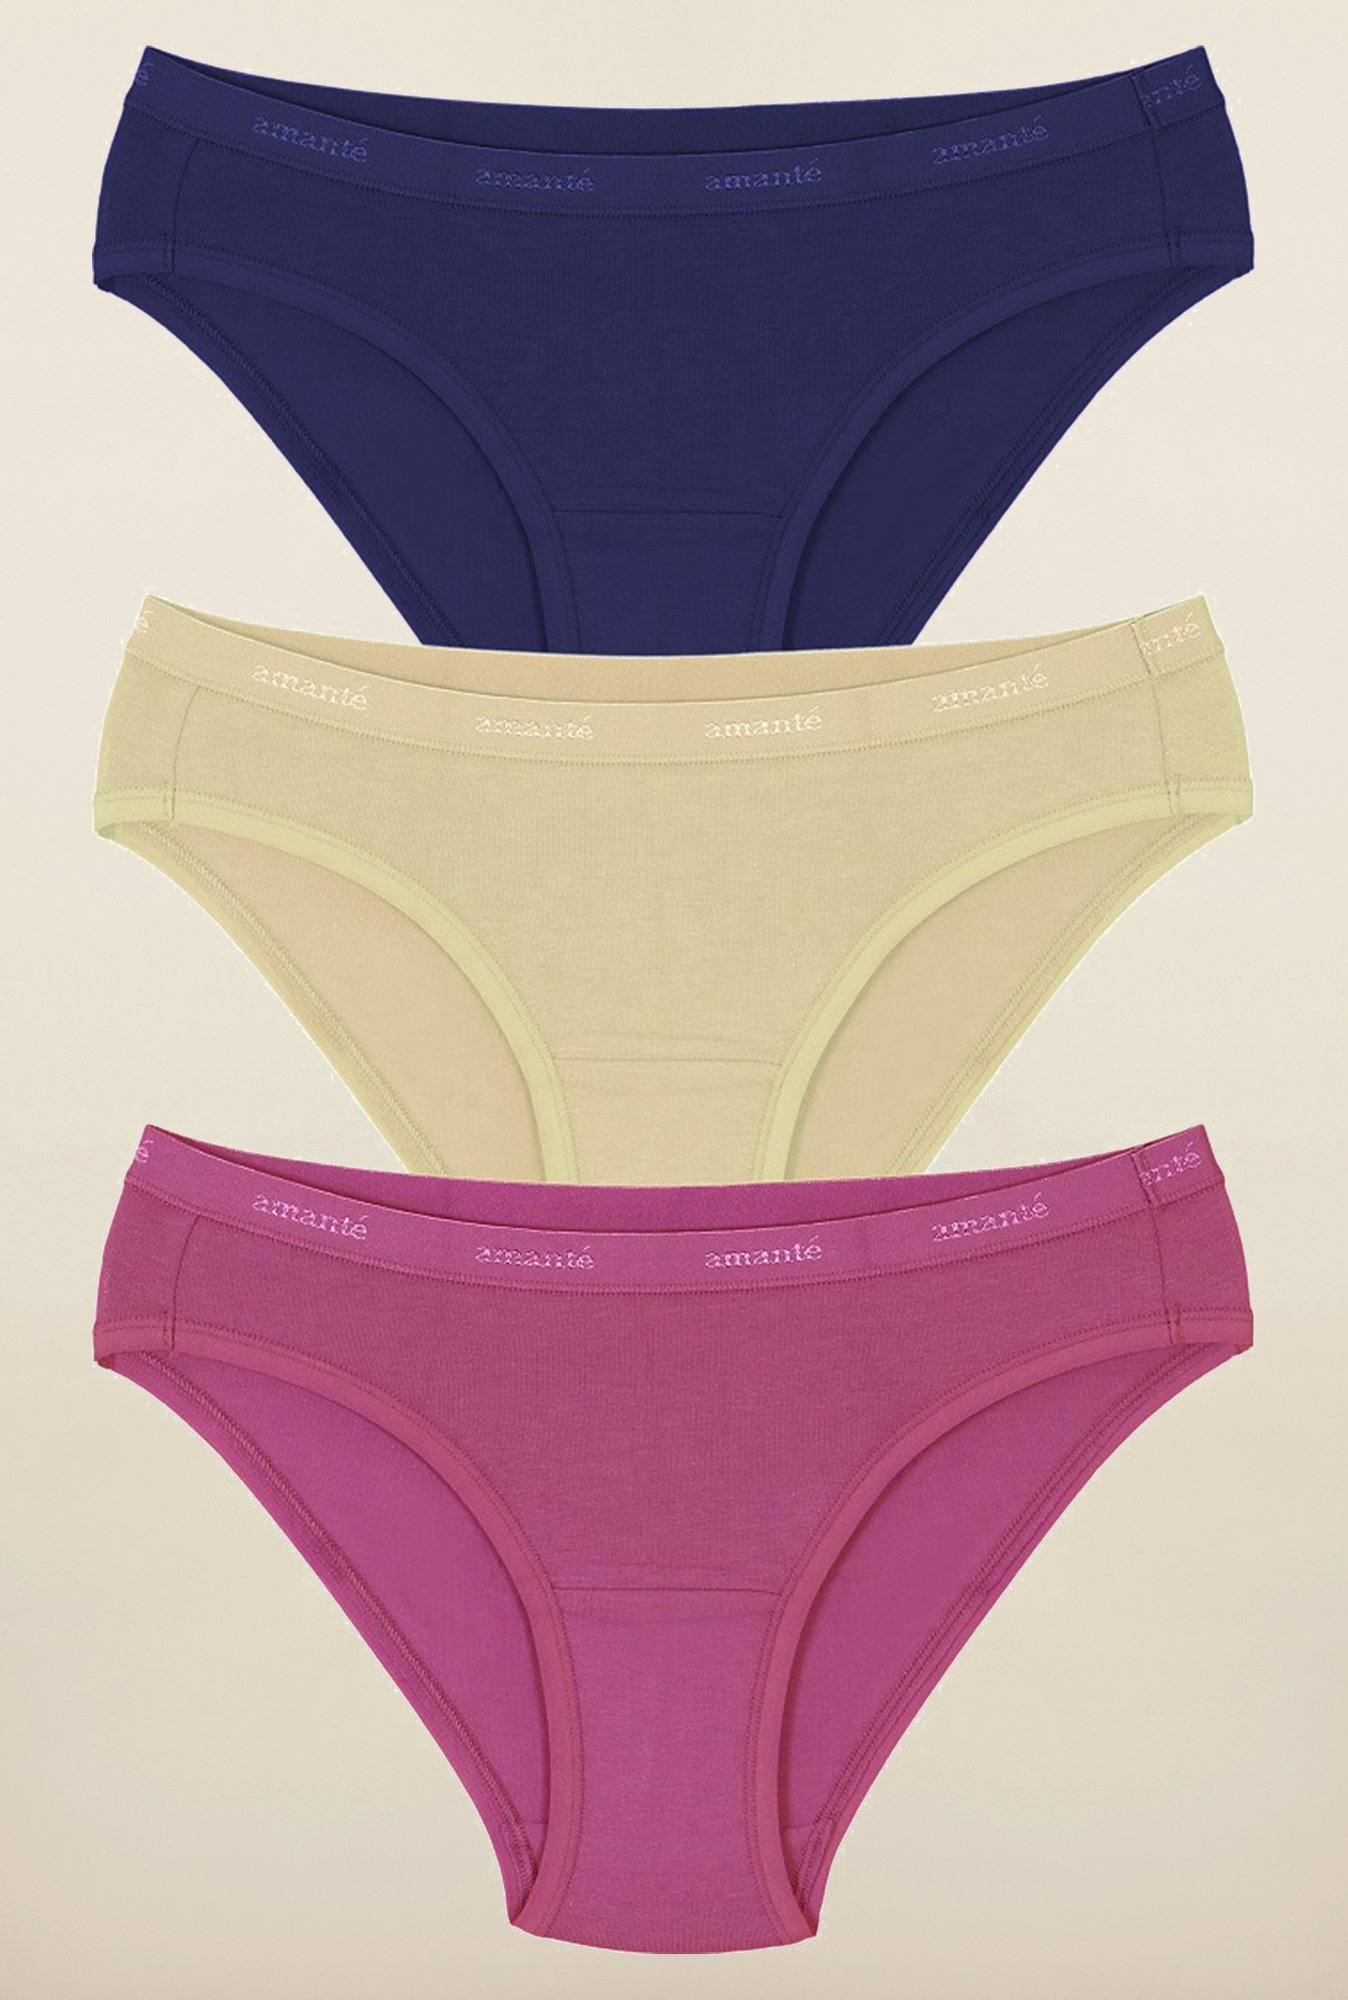 Amante Pink, Beige and Blue Bikini Panties (Pack Of 3)